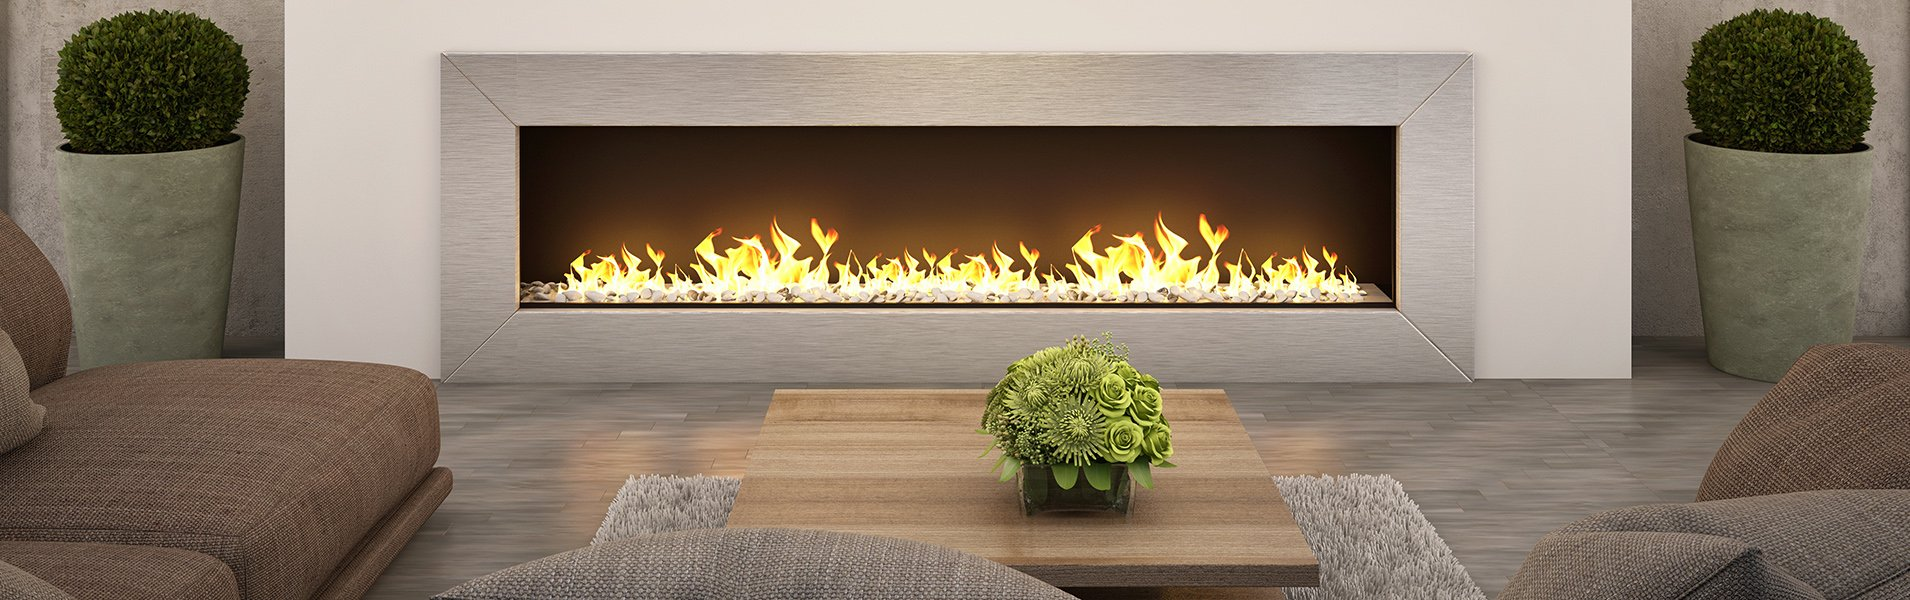 fireplace inserts for any style decor